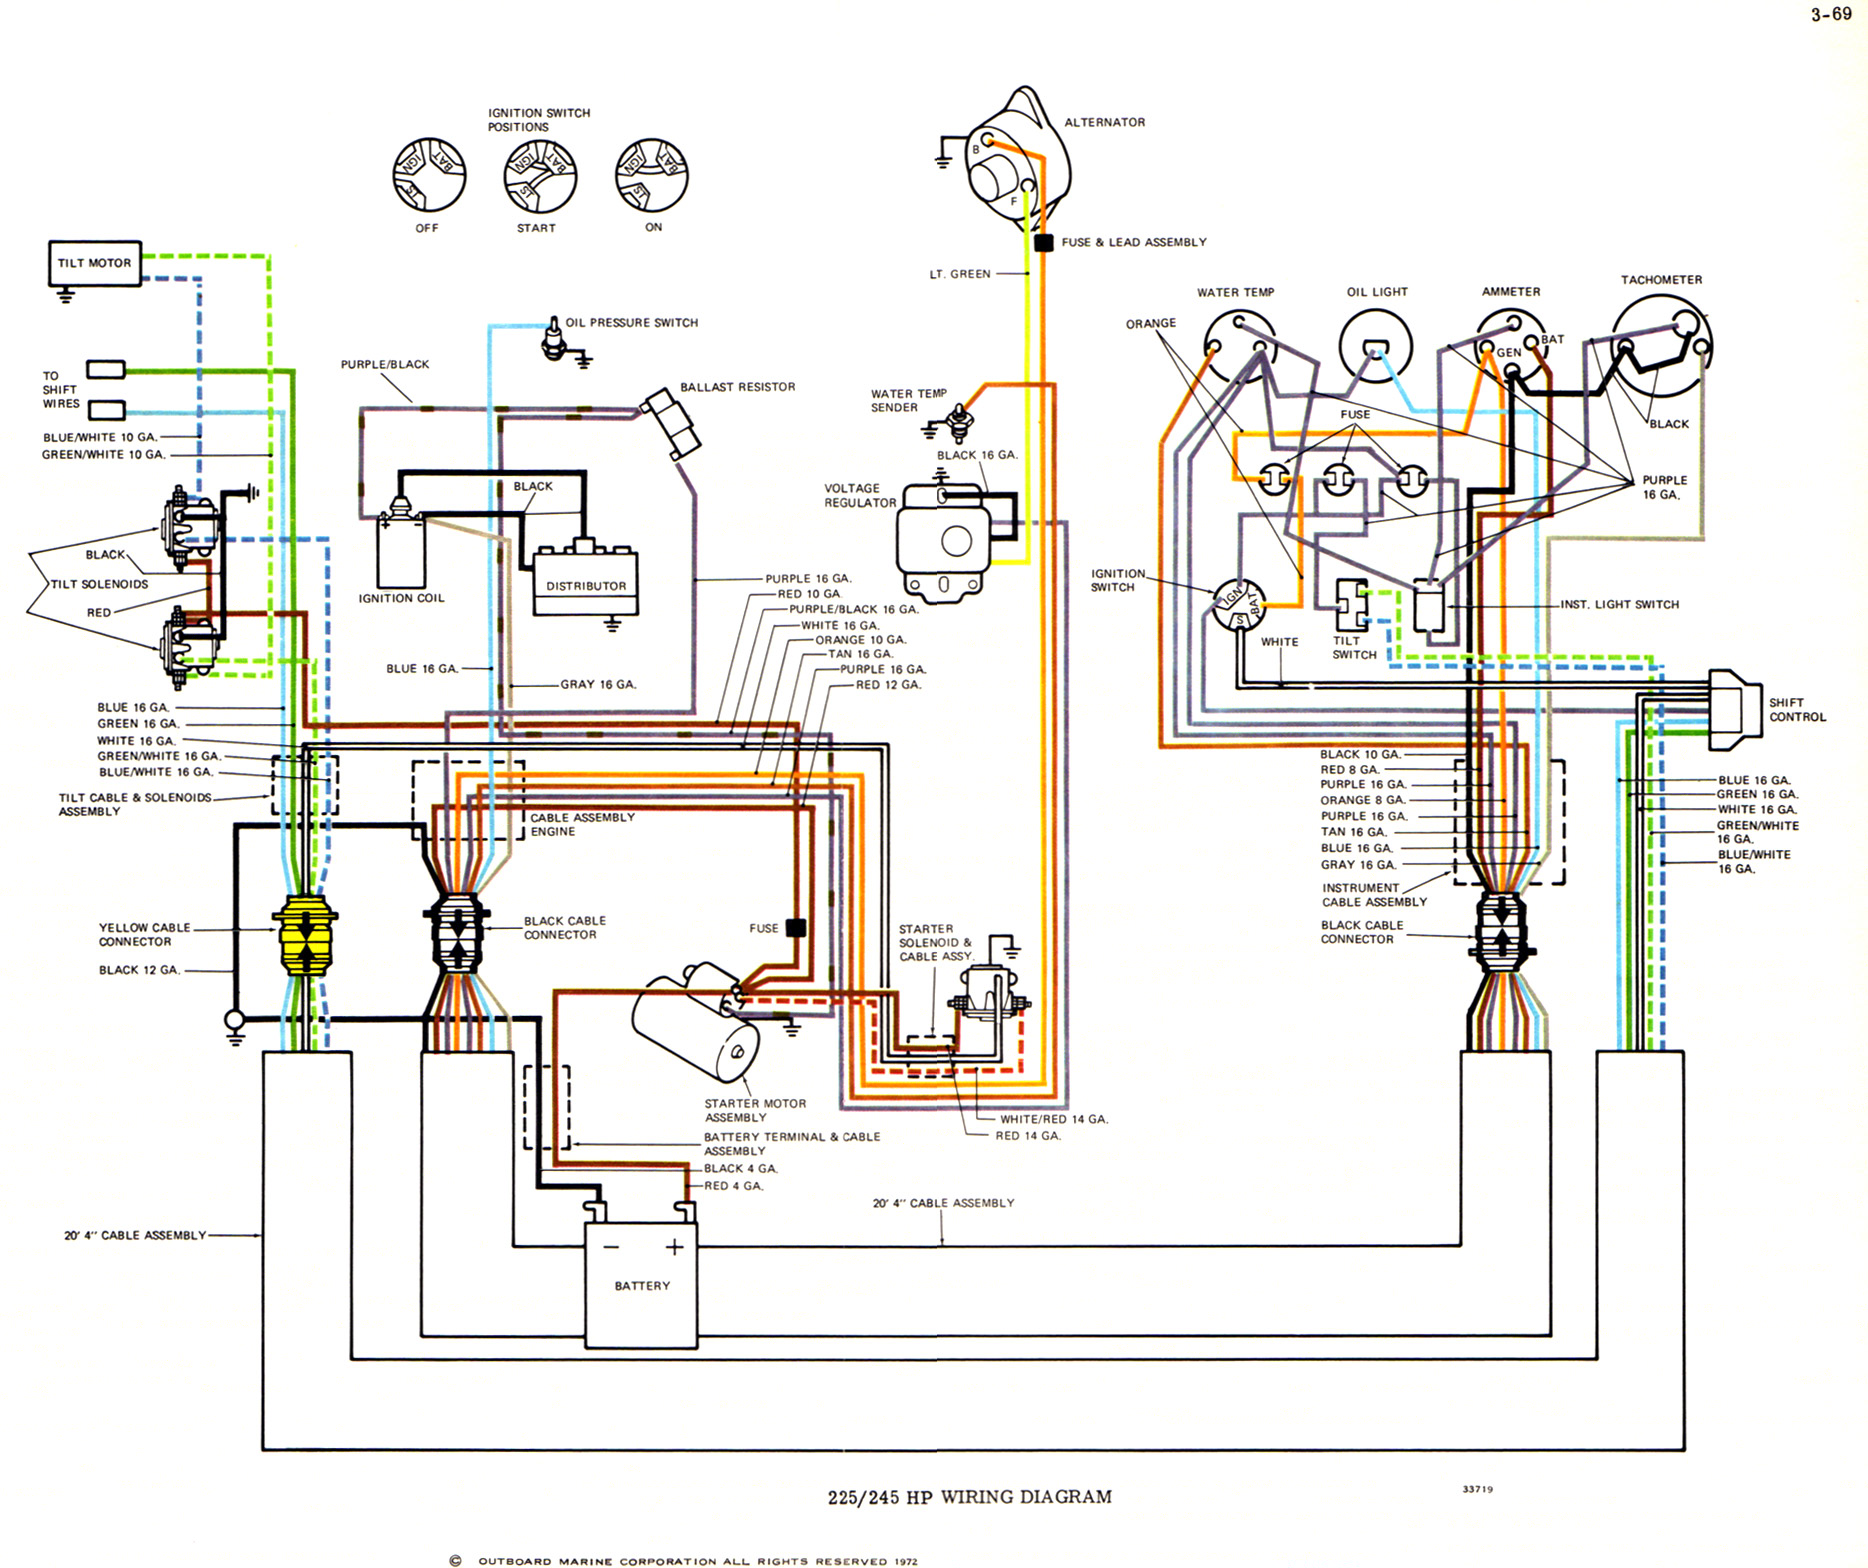 Magnificent 0583653 Omc Wiring Diagram Wiring Diagram Wiring Cloud Oideiuggs Outletorg